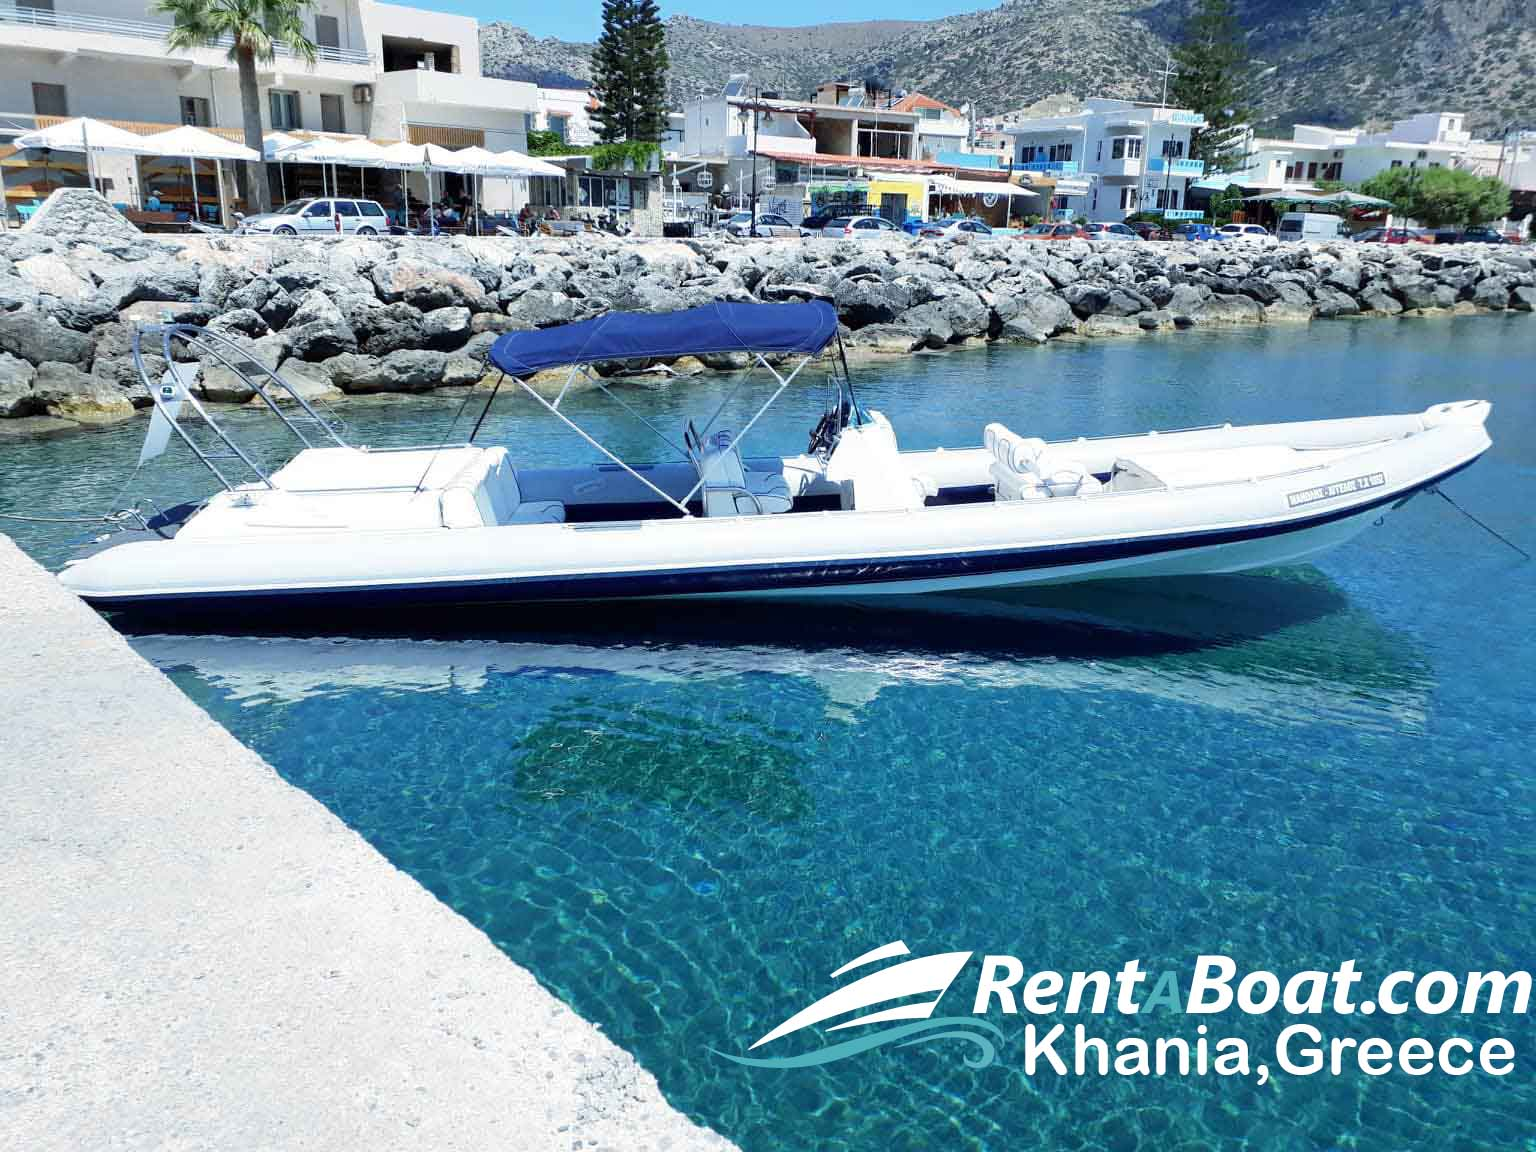 Boat Rentals near you / Affordable Alternative to Boat Ownership